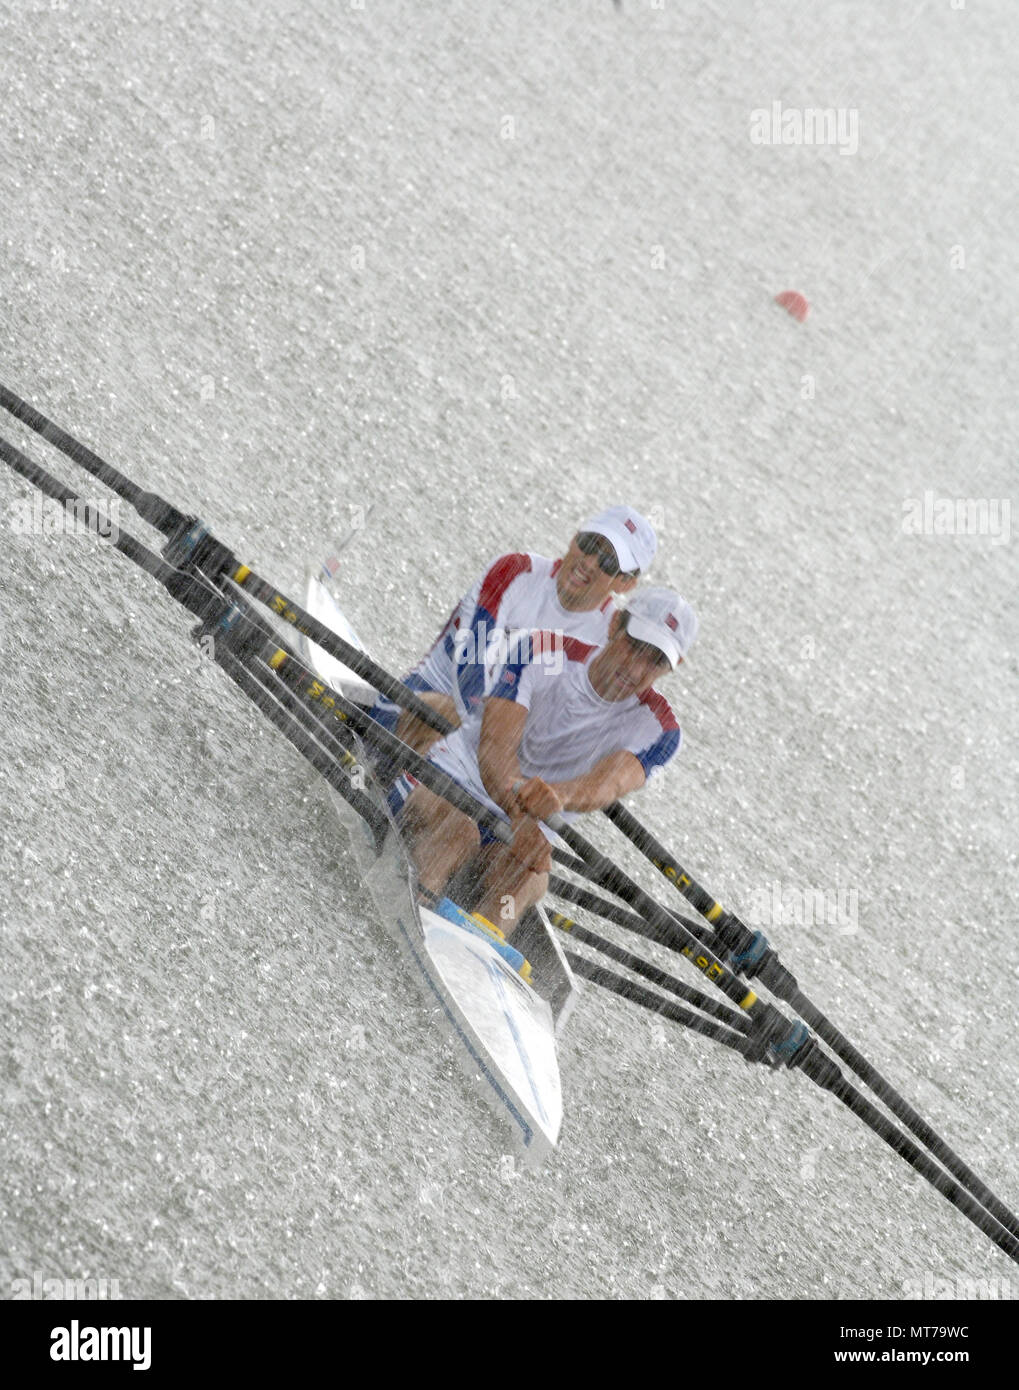 Eton GREAT BRITAIN 2006 World Rowing Championships 21 08 C Peter SPURRIER Peterspurriergmail GBR LM2X Bow James LINDSAY FYNN